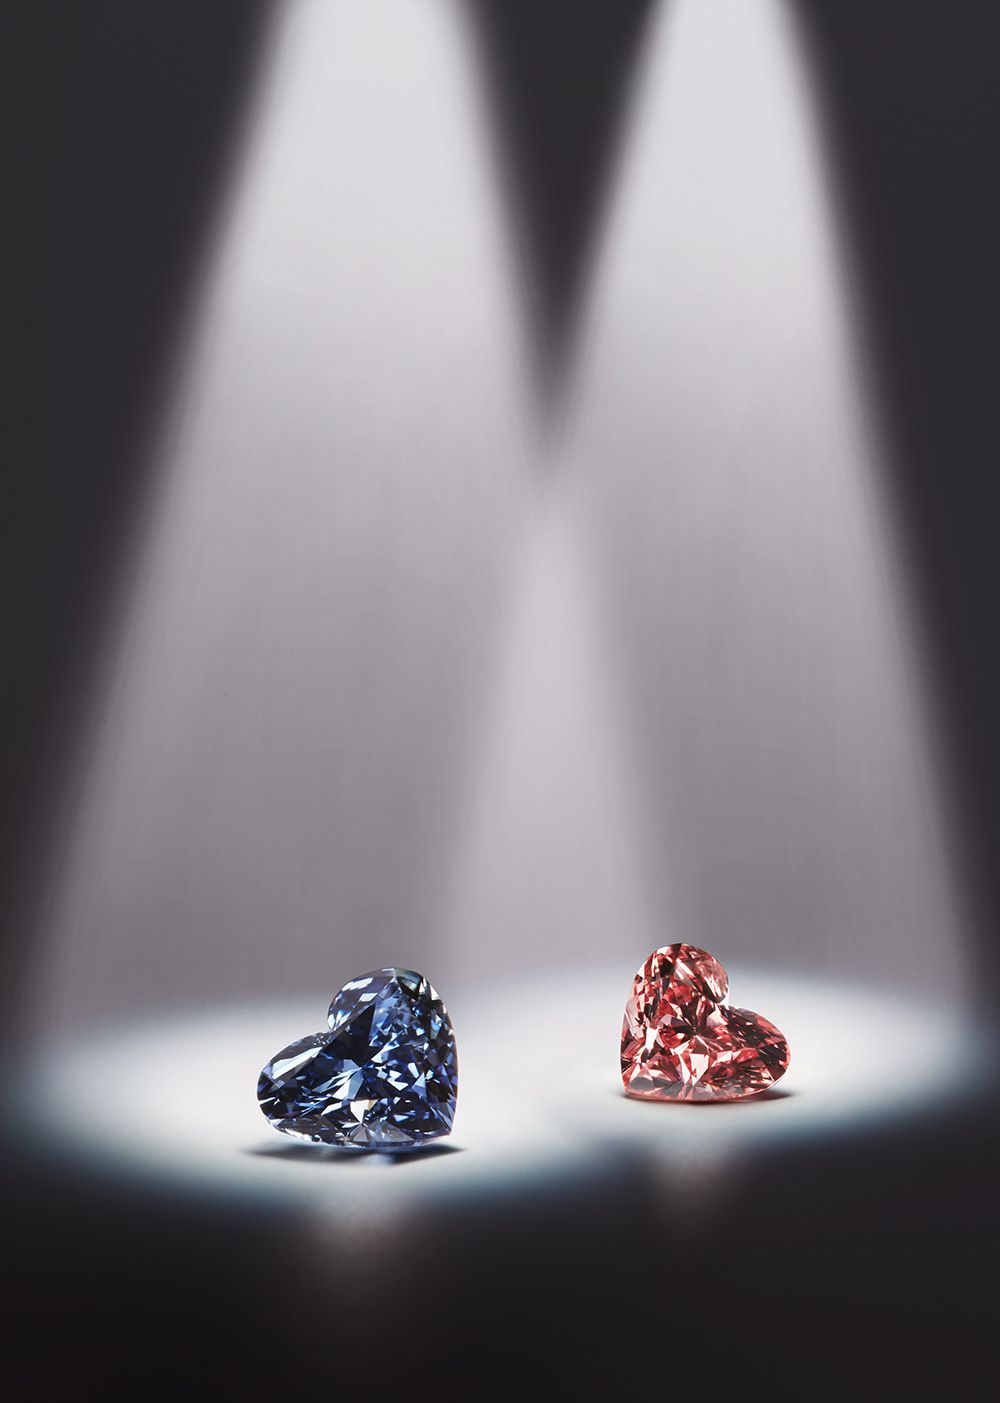 Two heart-cut diamonds from the Argyle Pink Diamonds Tenders 2013 in Tokyo: the 0.71ct Argyle Celestial Fancy Dark Gray-Blue diamond (left) and a matching pink diamond heart.